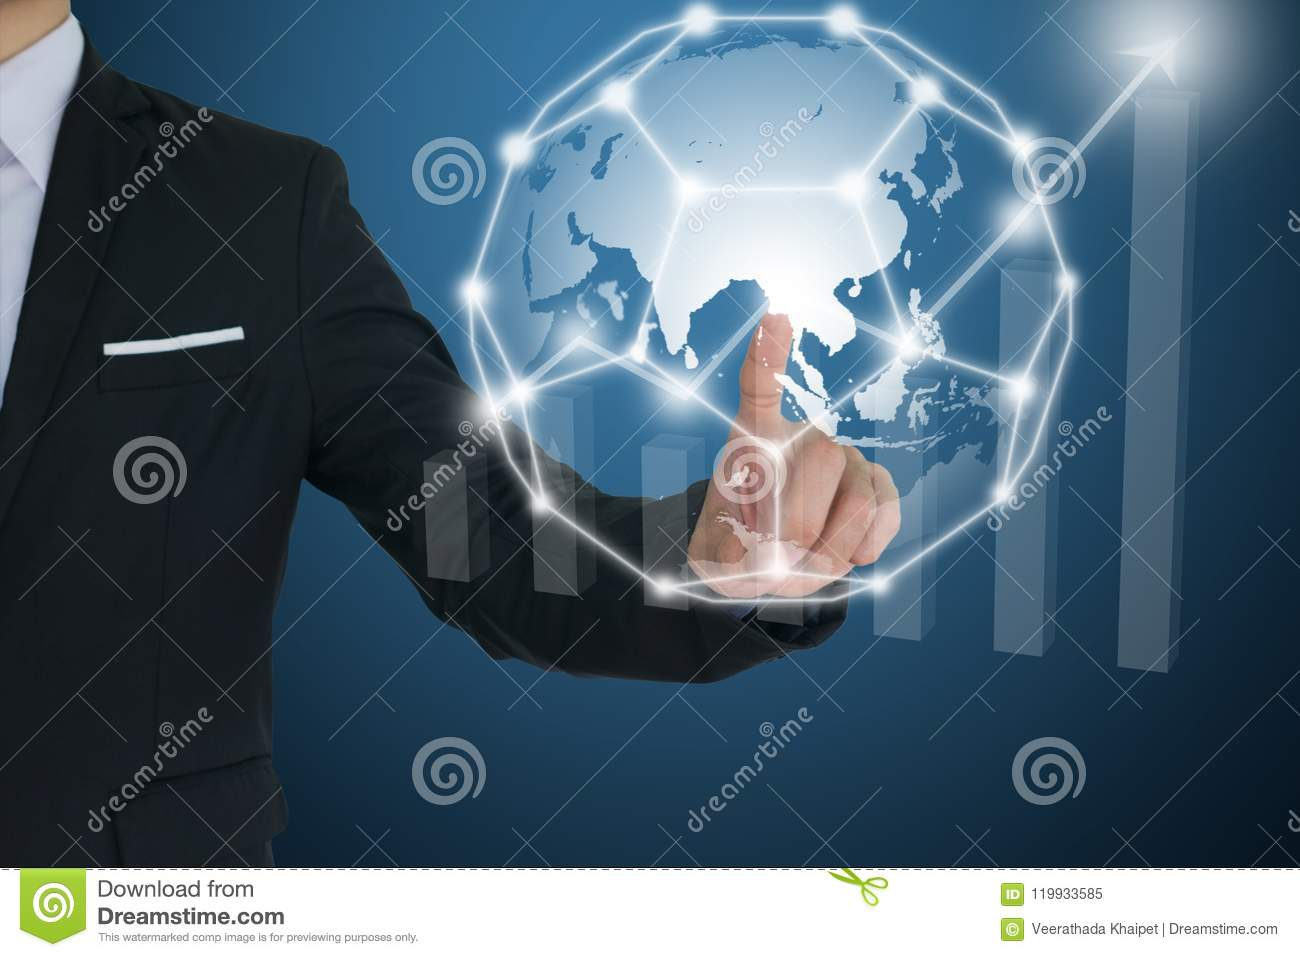 Businessman touching global network and Financial charts showing growing revenue. communication and social media concepts